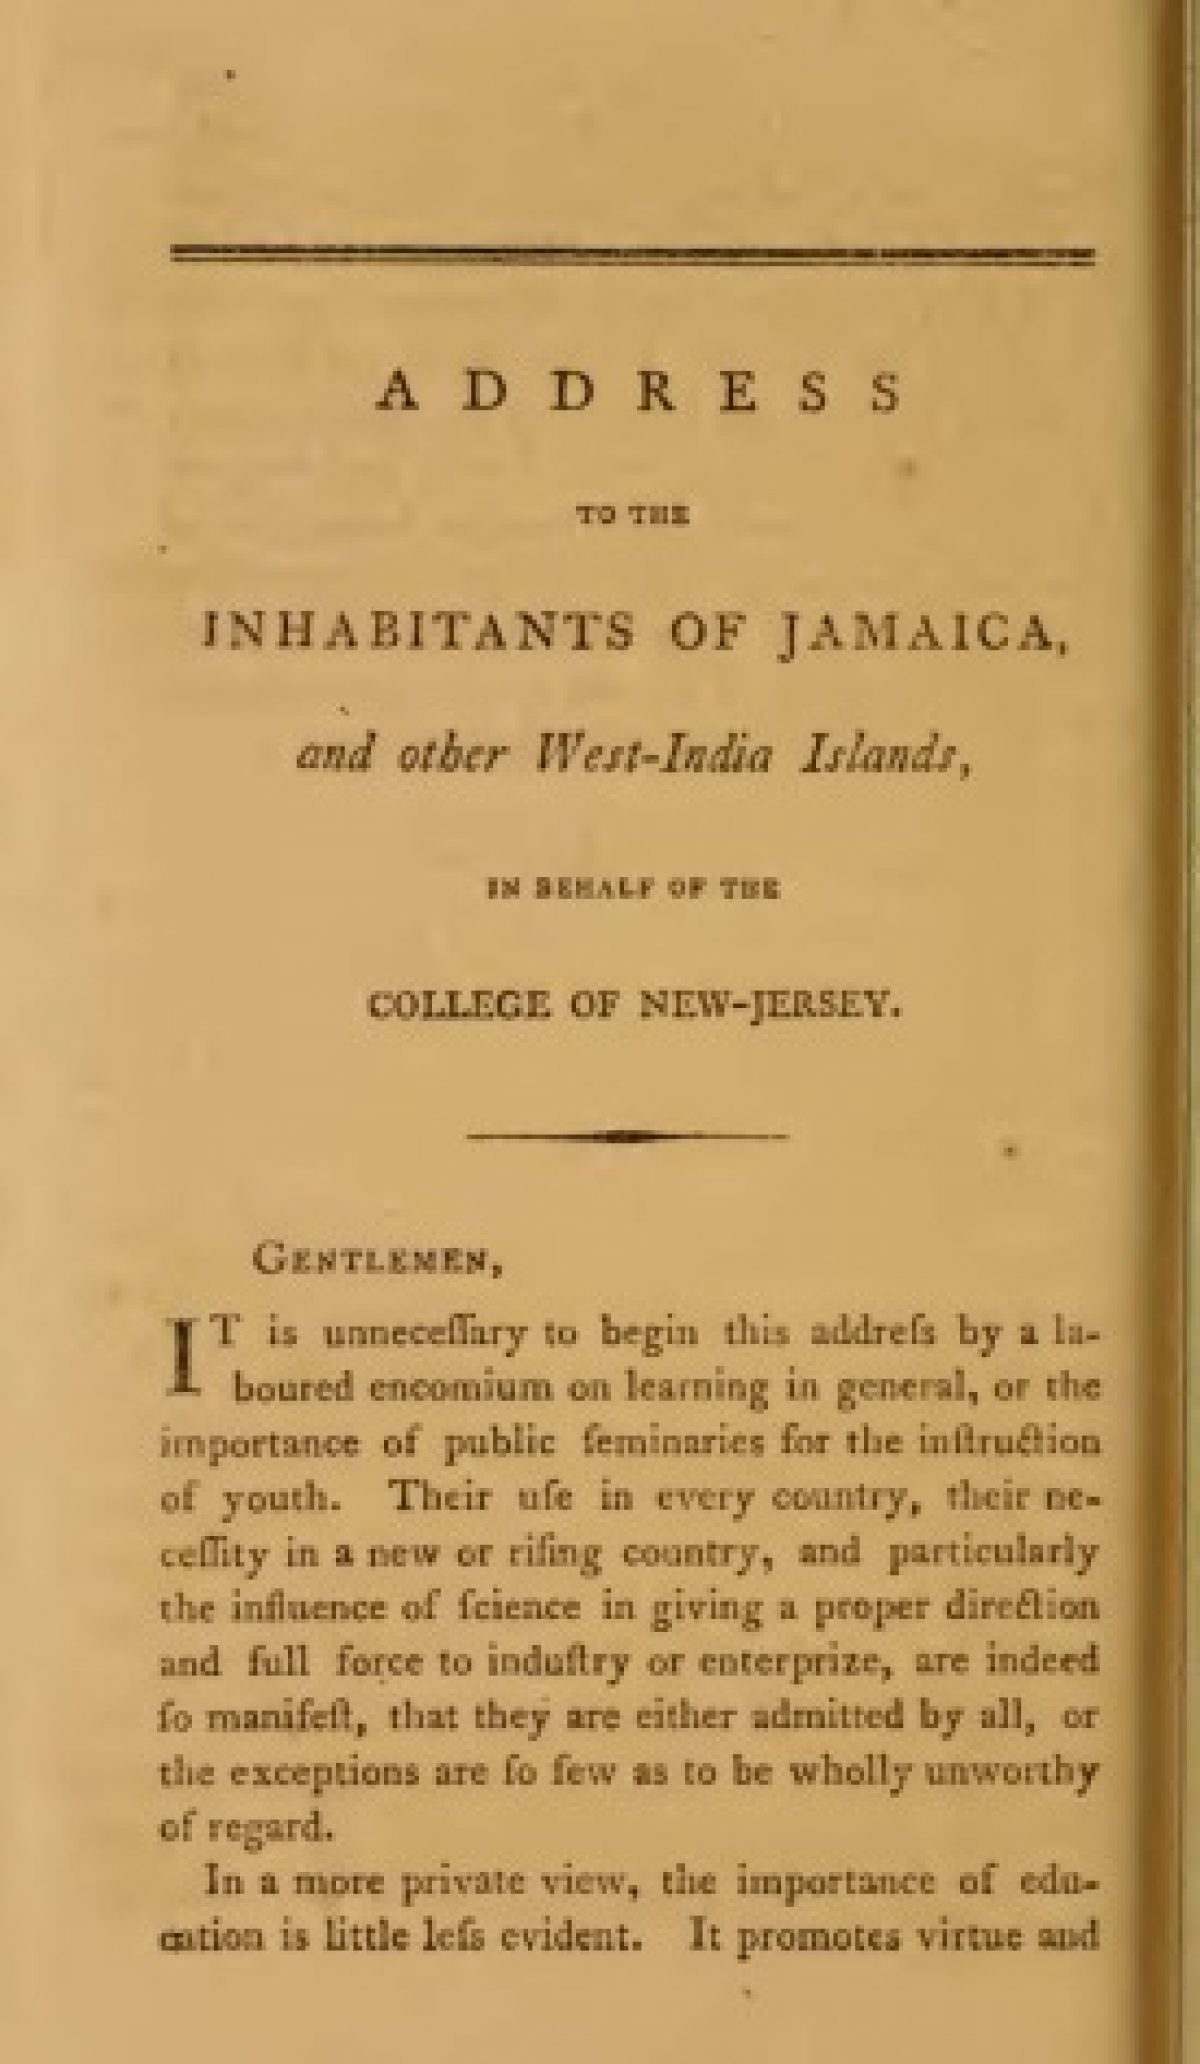 """Address to the Inhabitants of Jamaica, and Other West-India Islands"""